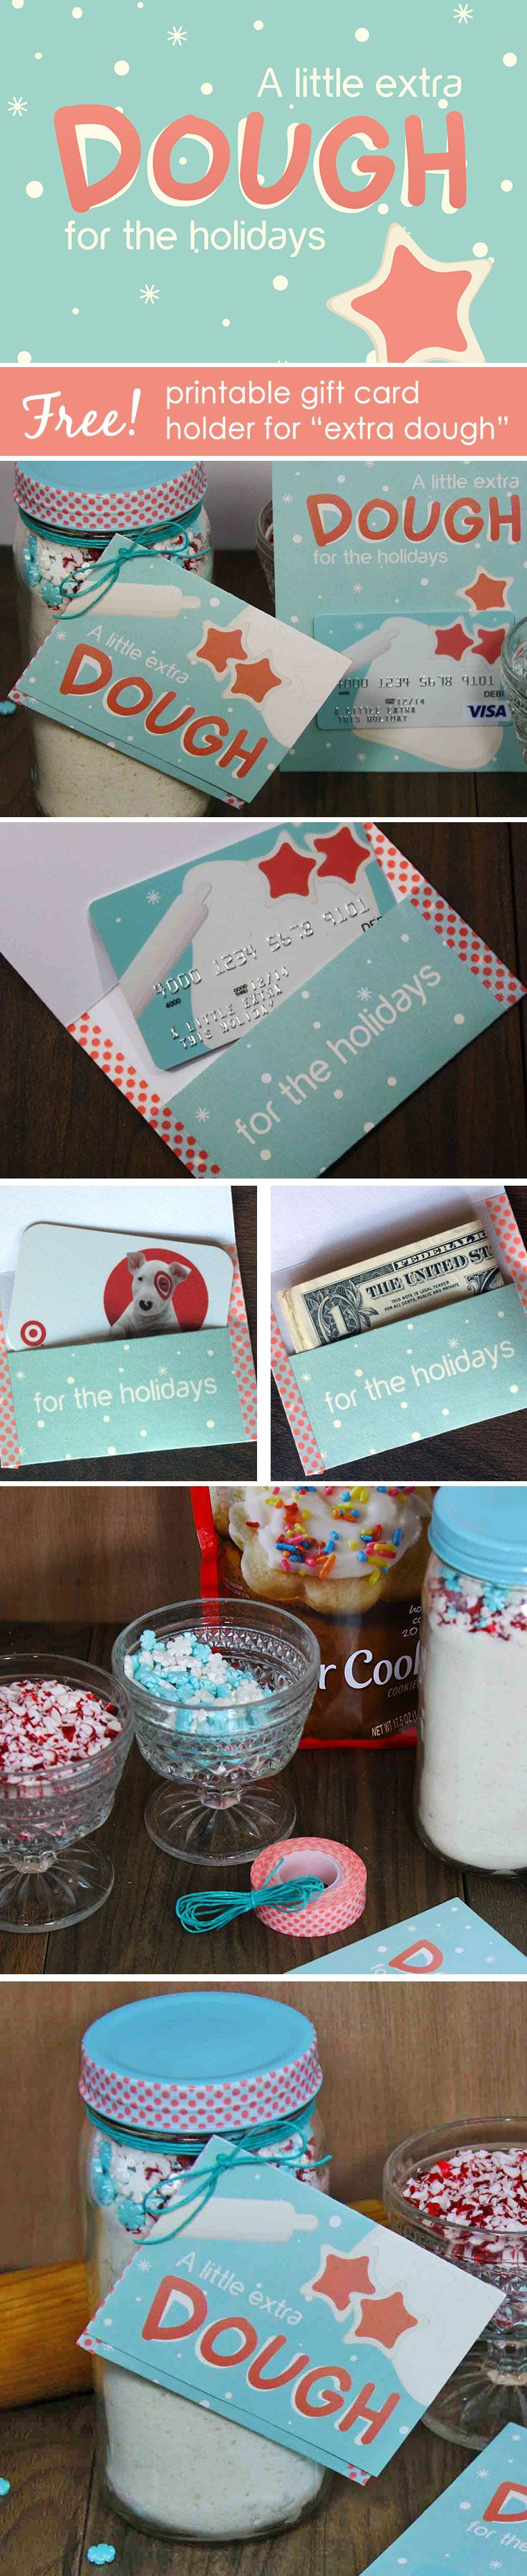 """Give someone a """"little extra dough"""" (and save some of your own) this holiday season with a free printable gift card holder."""